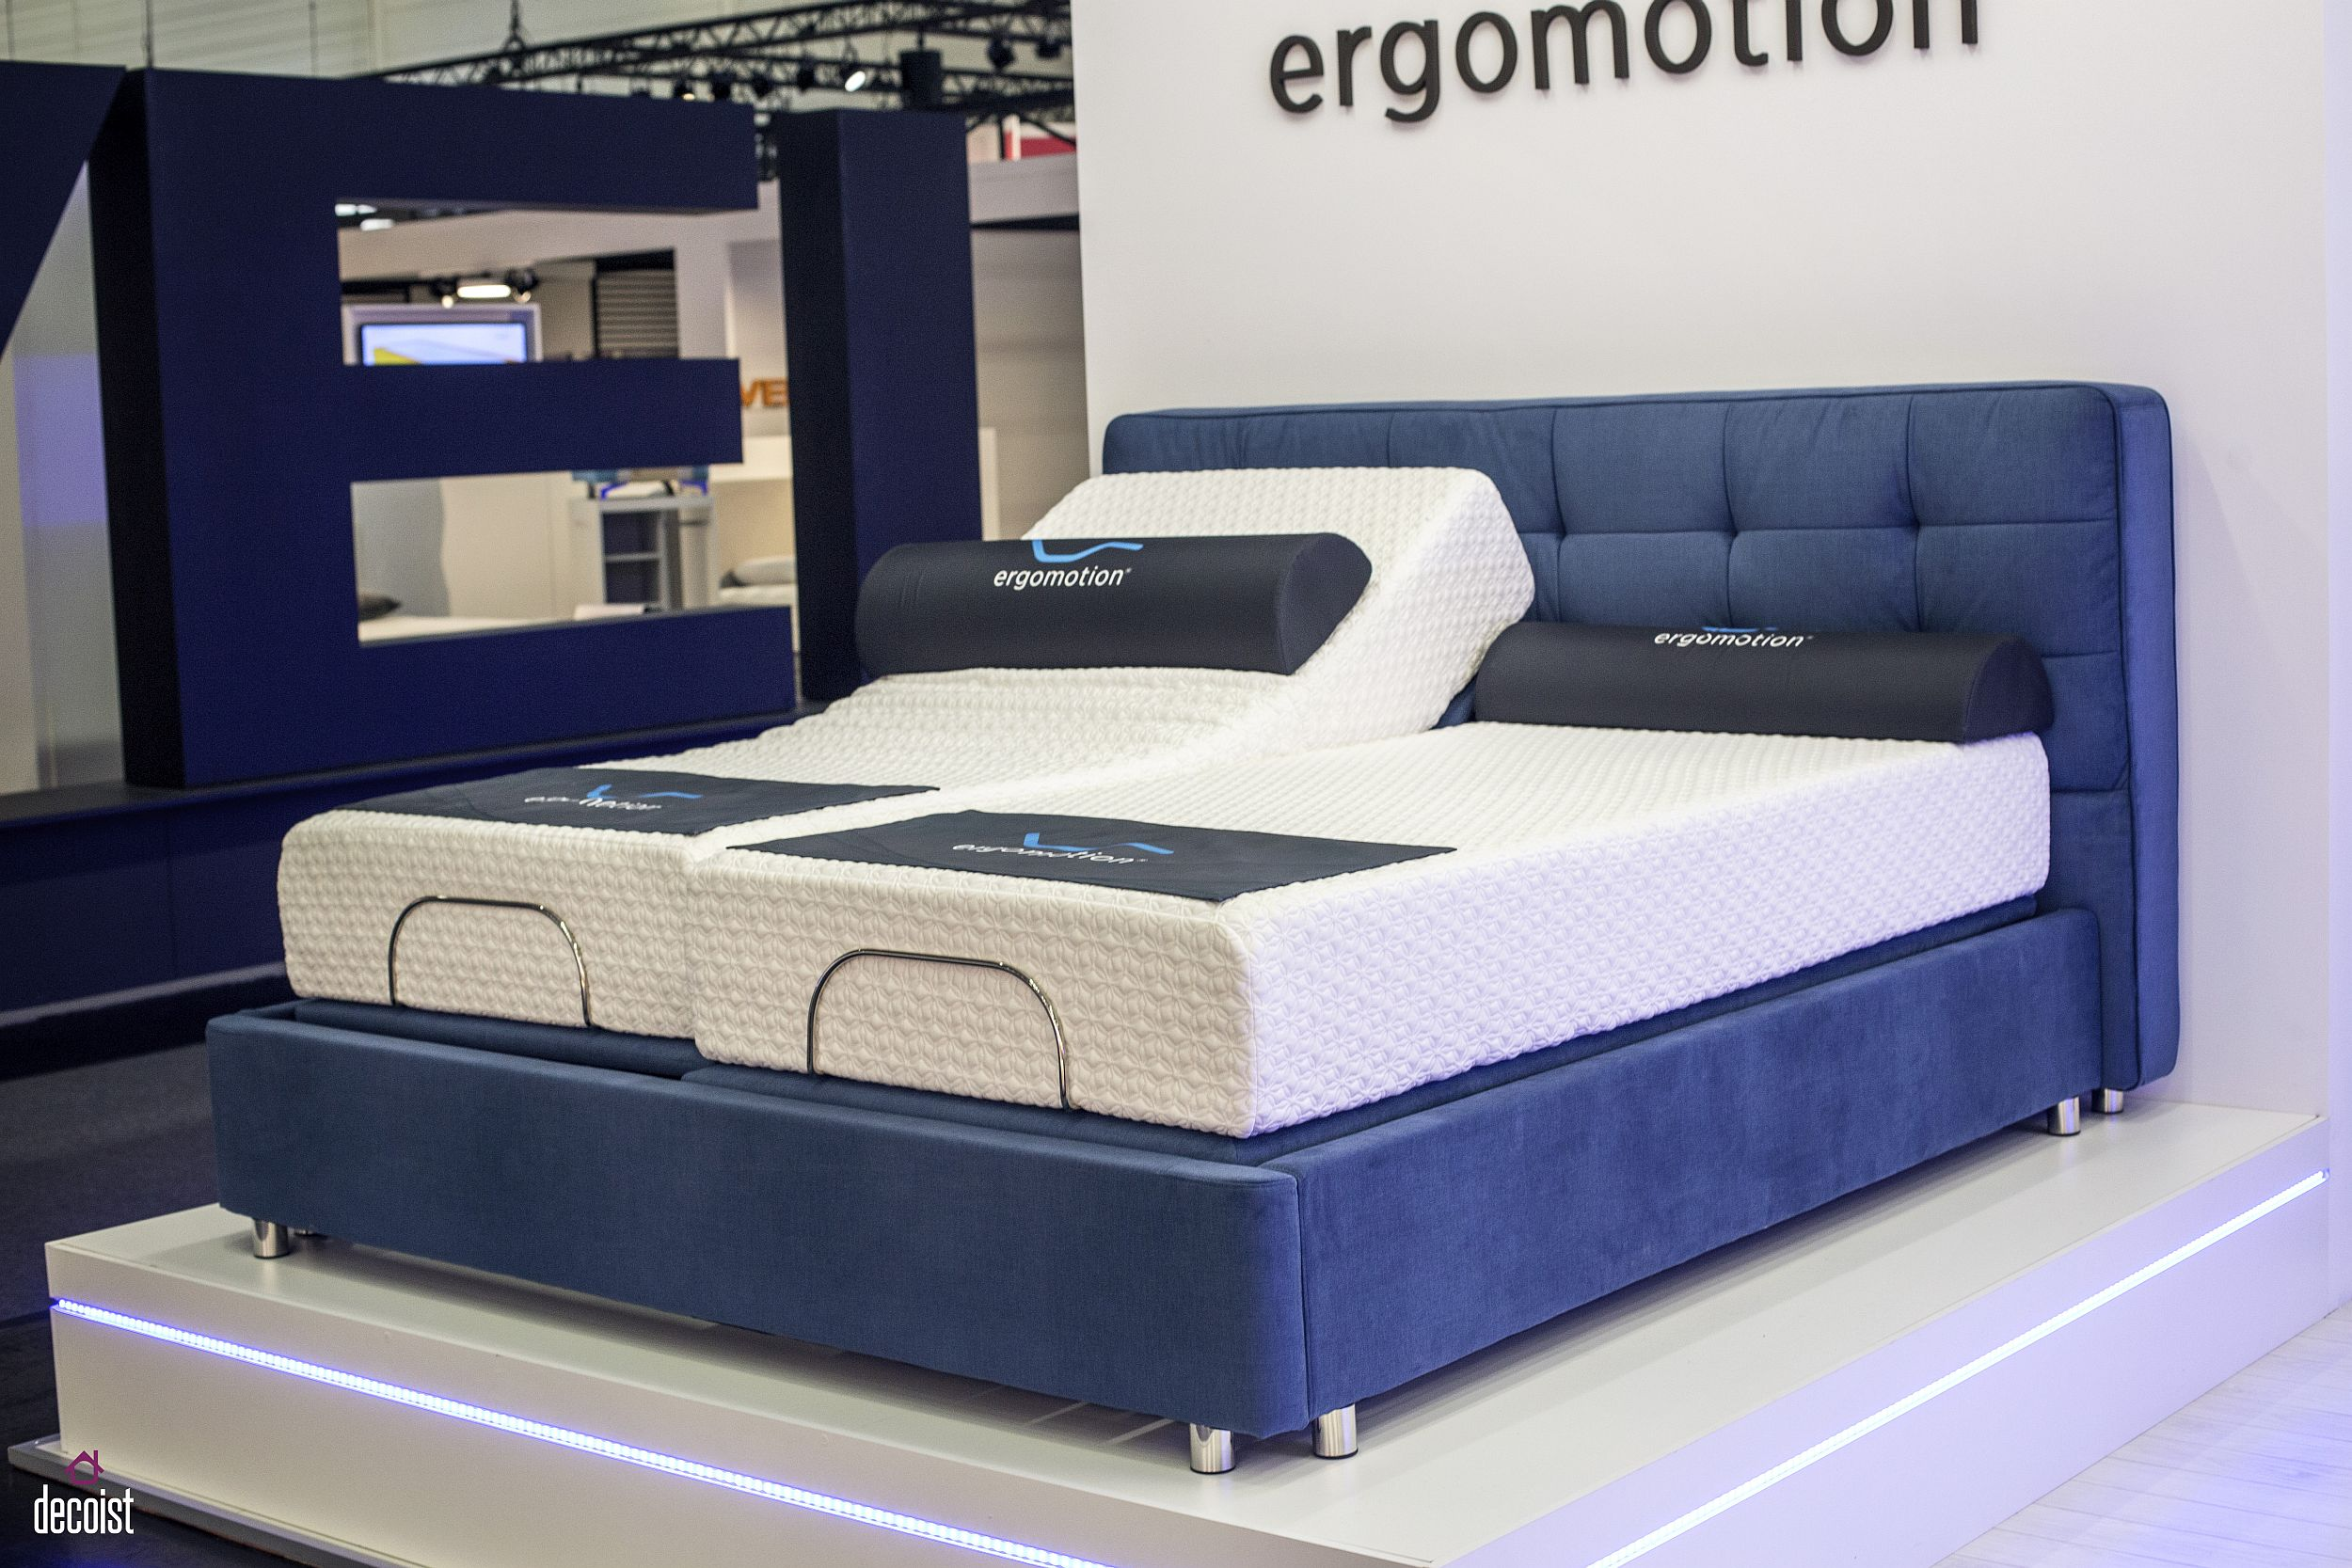 Ergomotion-bed-in-gorgeous-blue-is-both-aesthetic-and-ultra-comfy